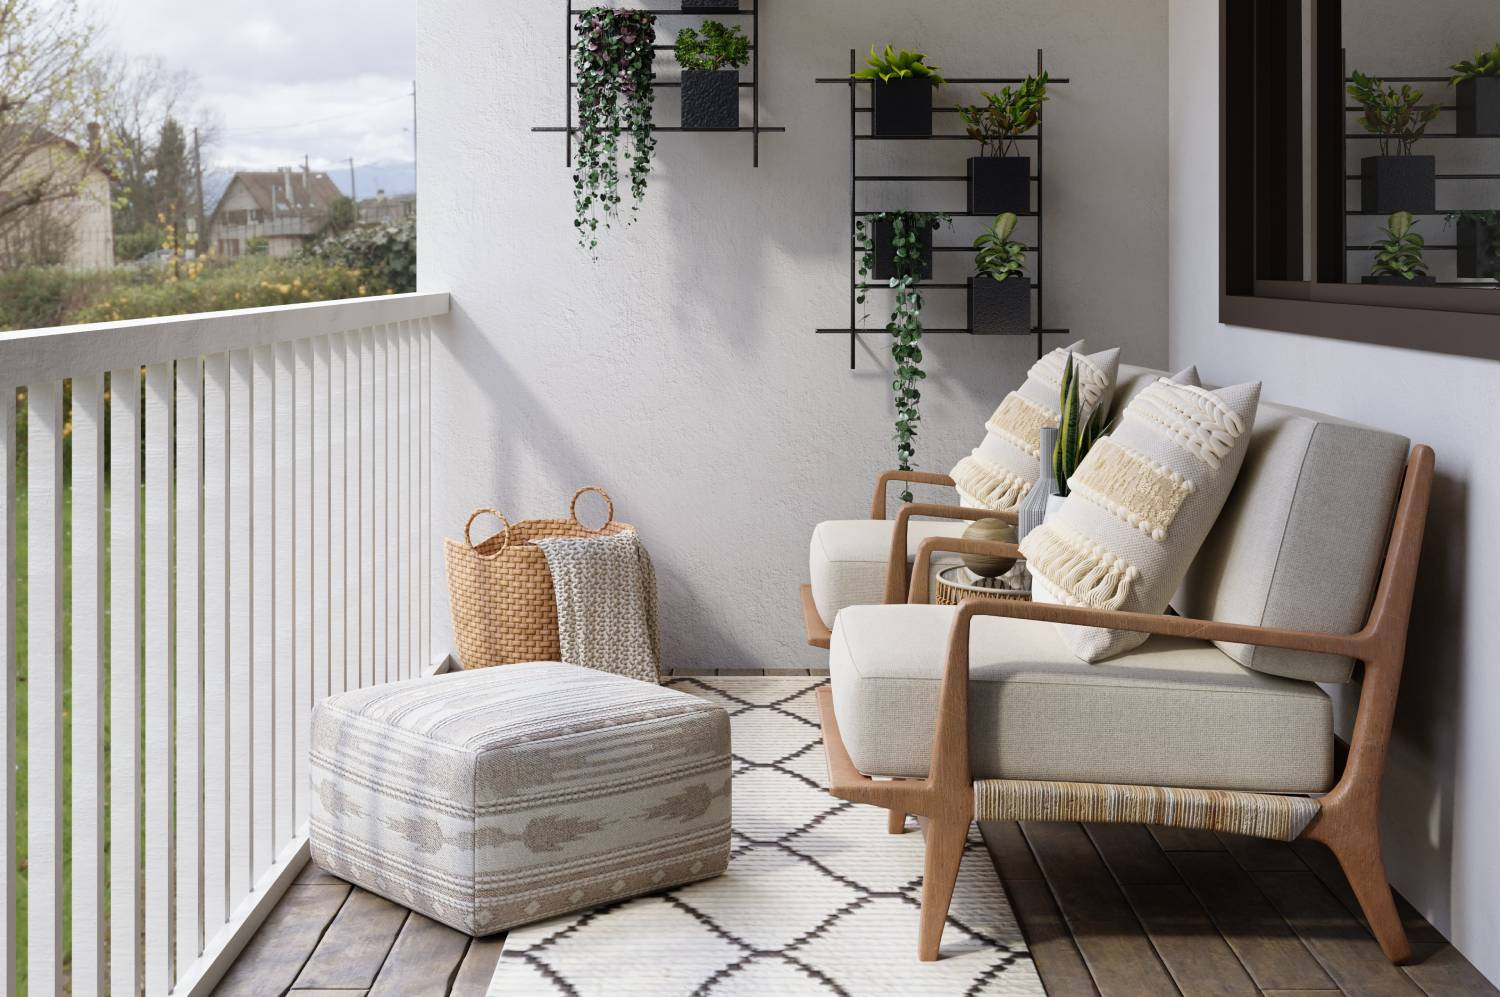 balcony with plants and chairs